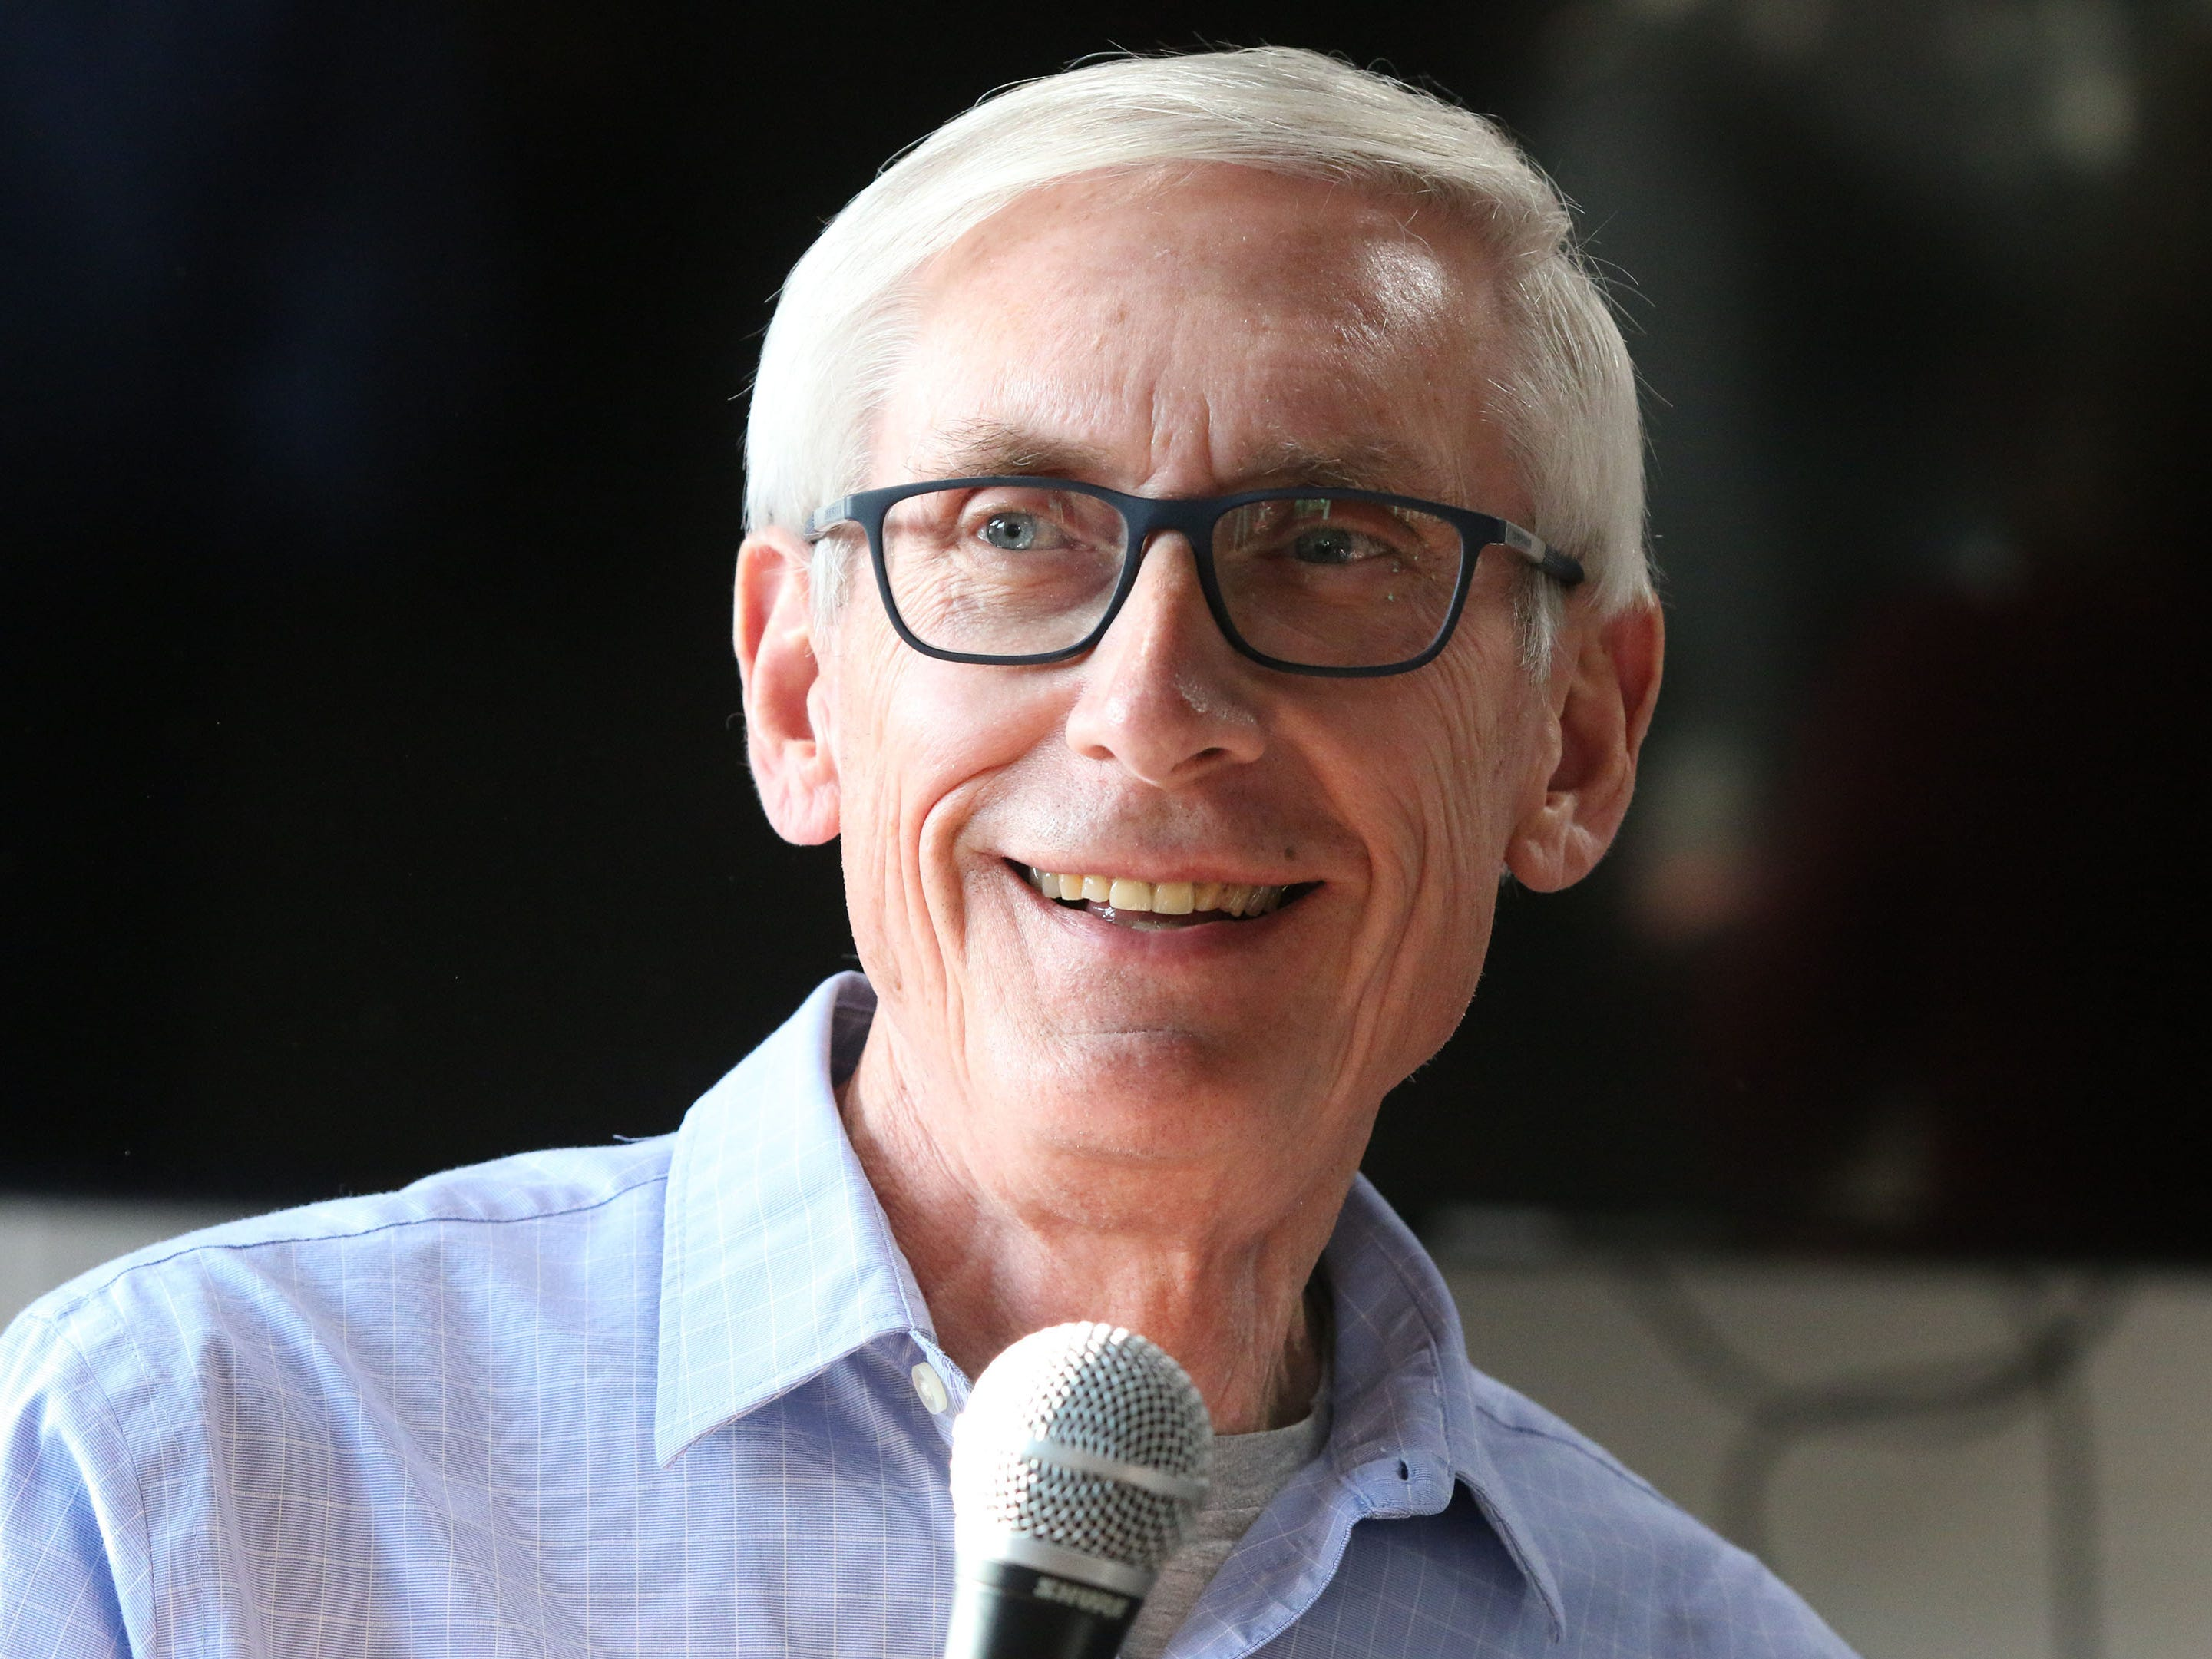 Wisconsin Gubernatorial Candidate Tony Evers and Plymouth, Wis. native smiles at the crowd at The Hub coffee shop, Saturday, November 3, 2018, in Plymouth, Wis. Evers is hoping to unseat Gov. Scott Walker.